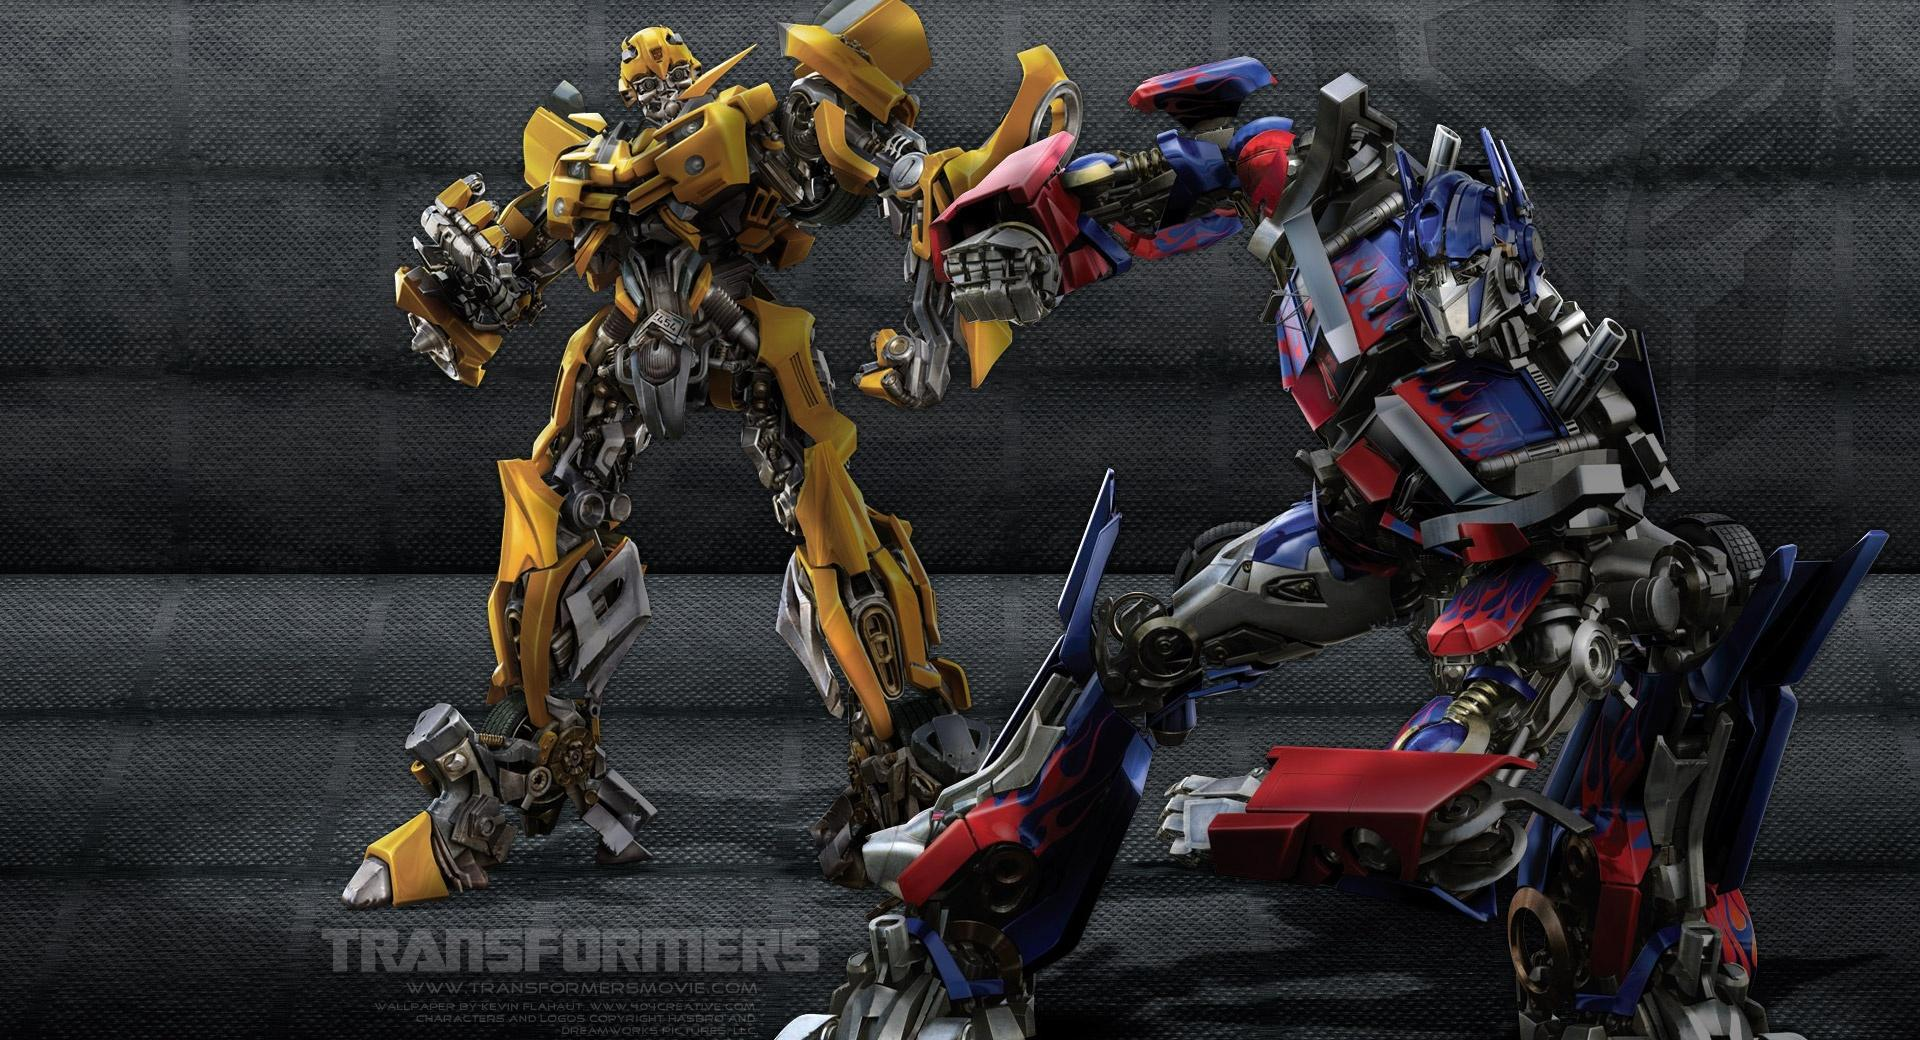 Transformers 1 wallpapers HD quality